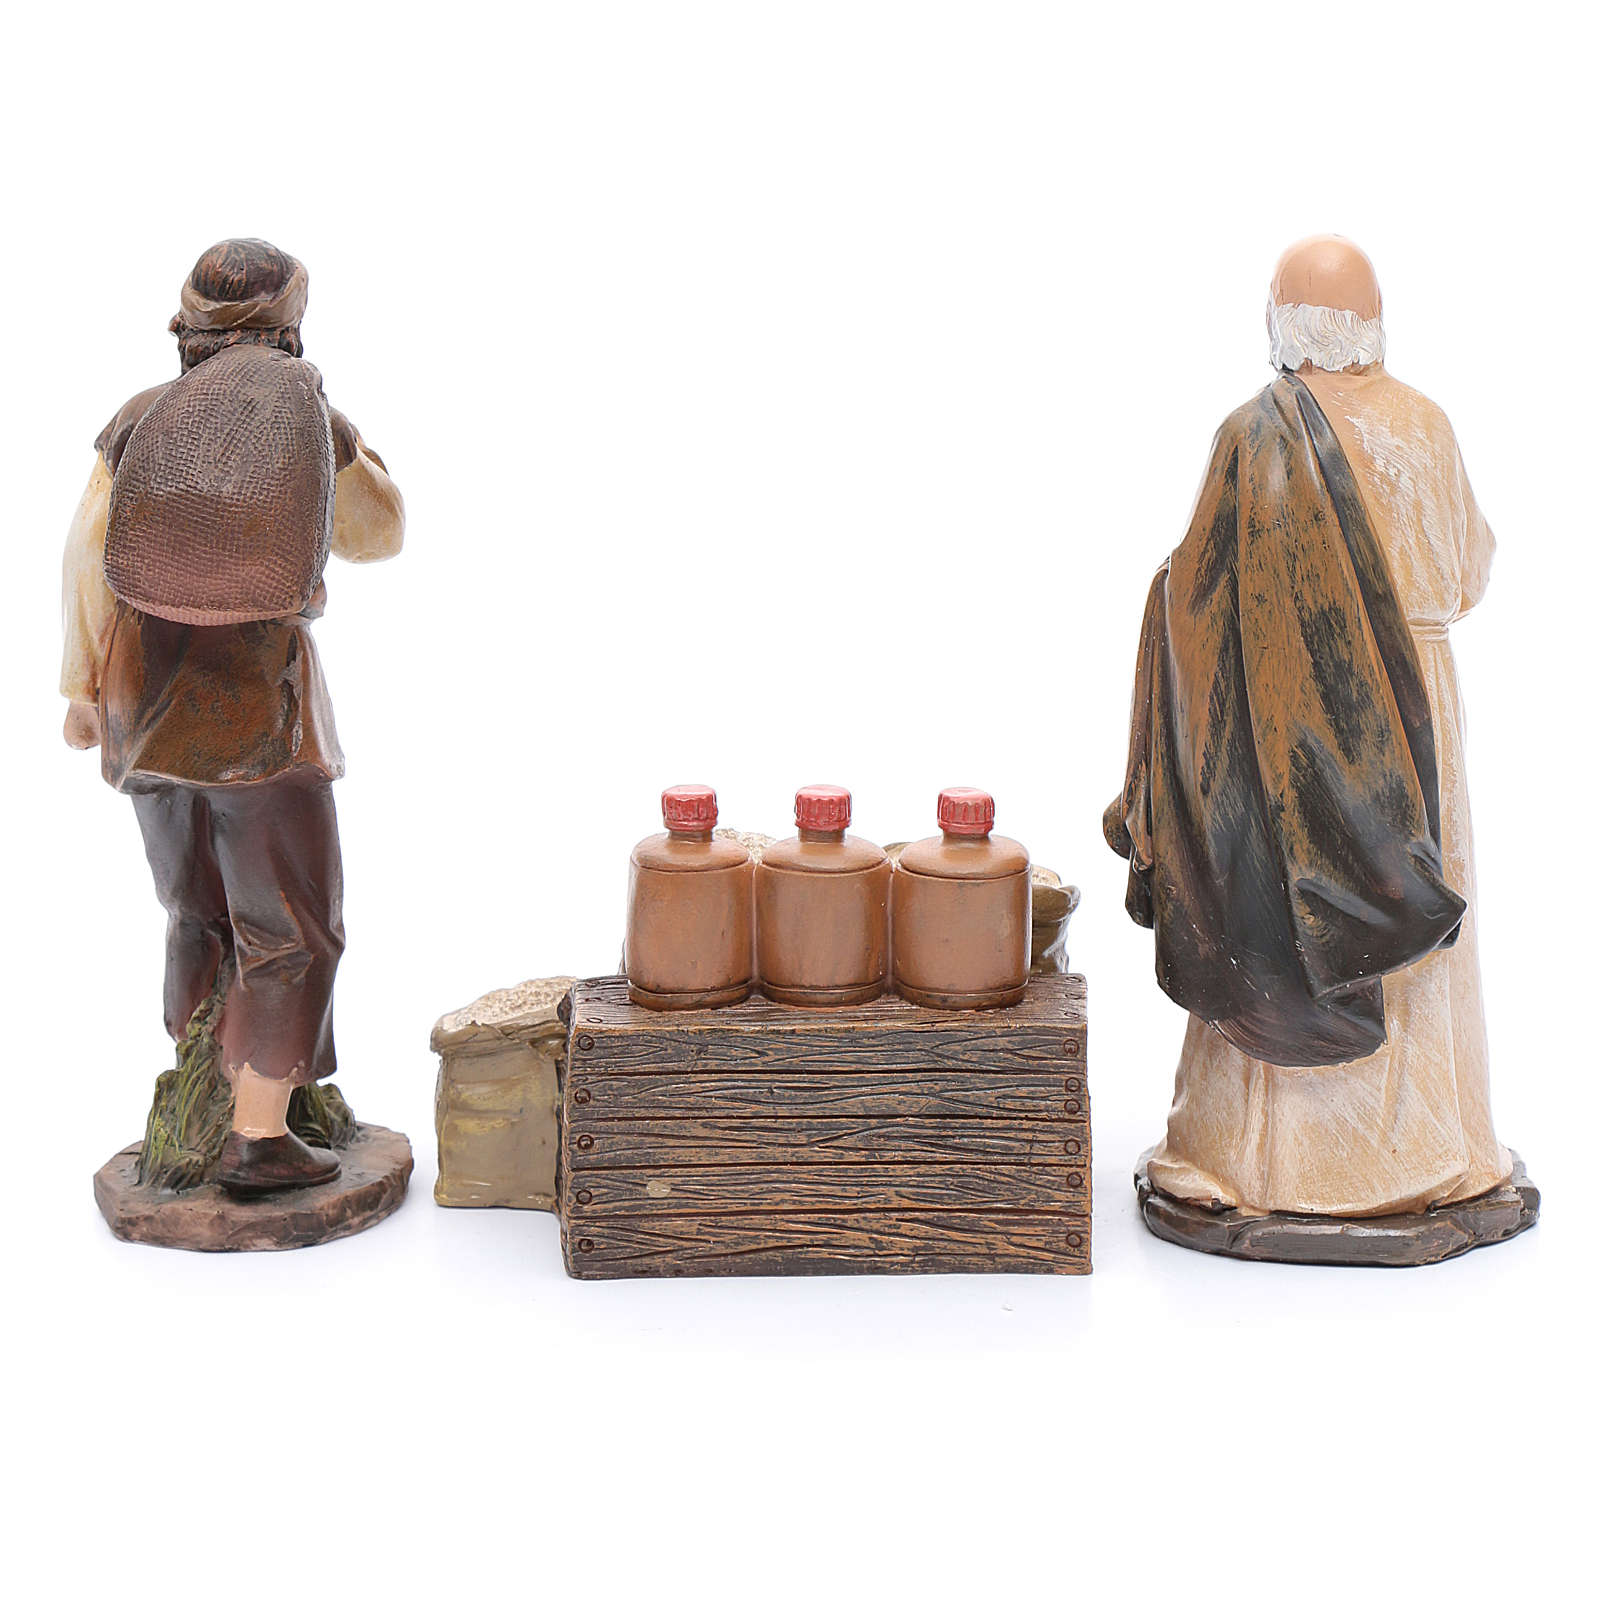 Nativity scene statues flour sellers with counter 20 cm 3 pieces set 3